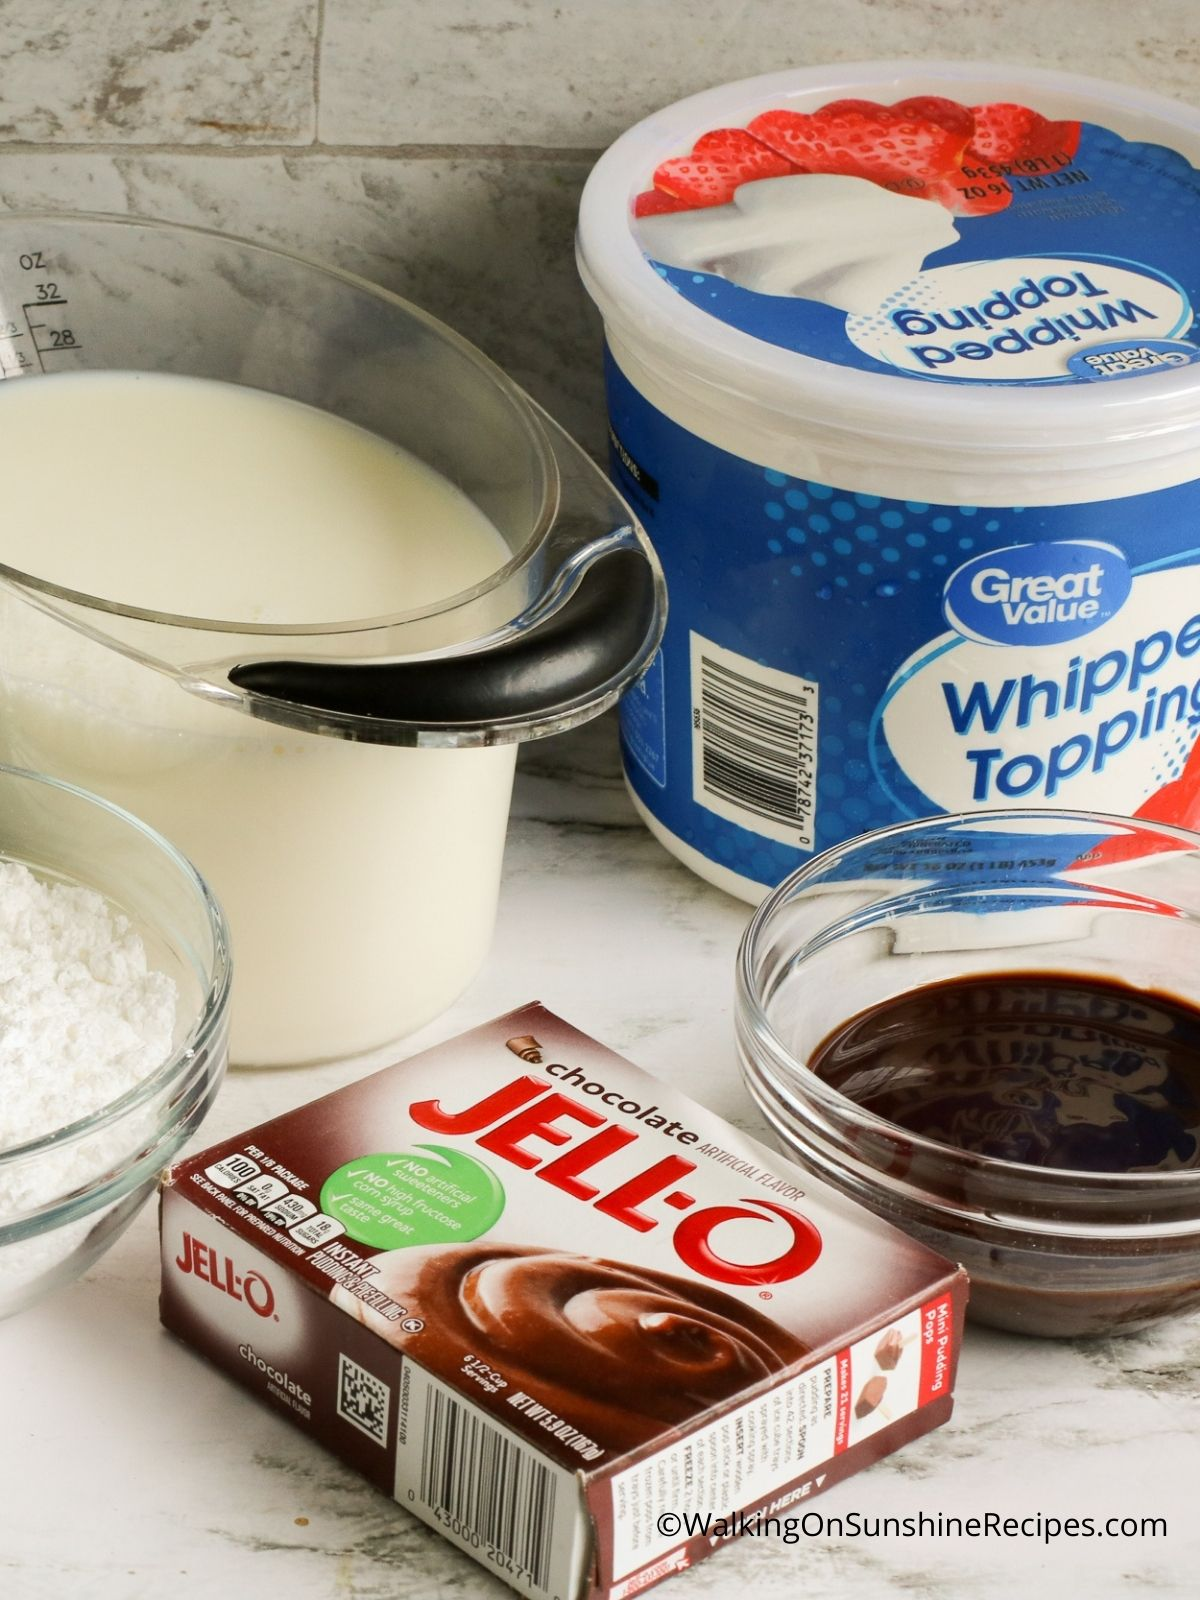 Ingredients for Oreo Pudding Pie.